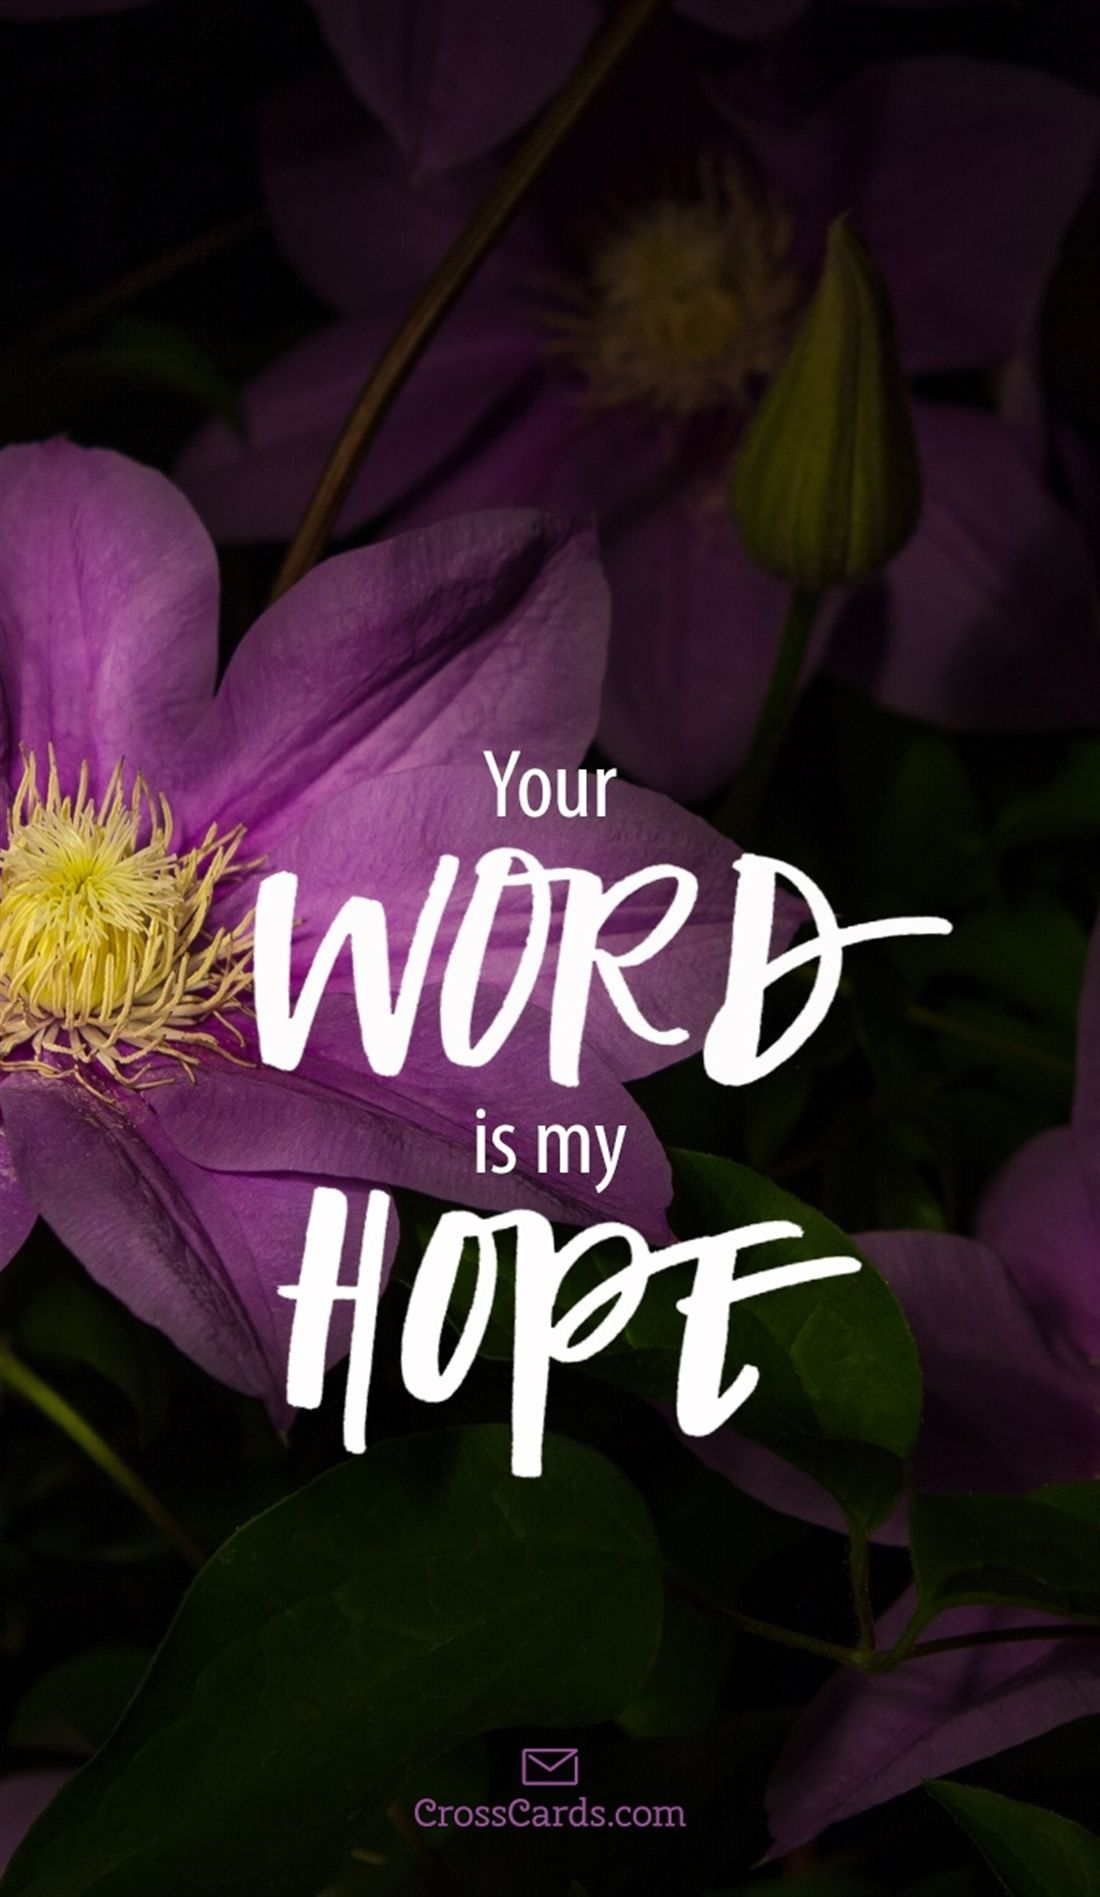 Your Word Is My Hope Free Christian Mobile Lock Screen Wallpaper Bible Verse Wallpaper Free Christian Lock Screen Wallpaper